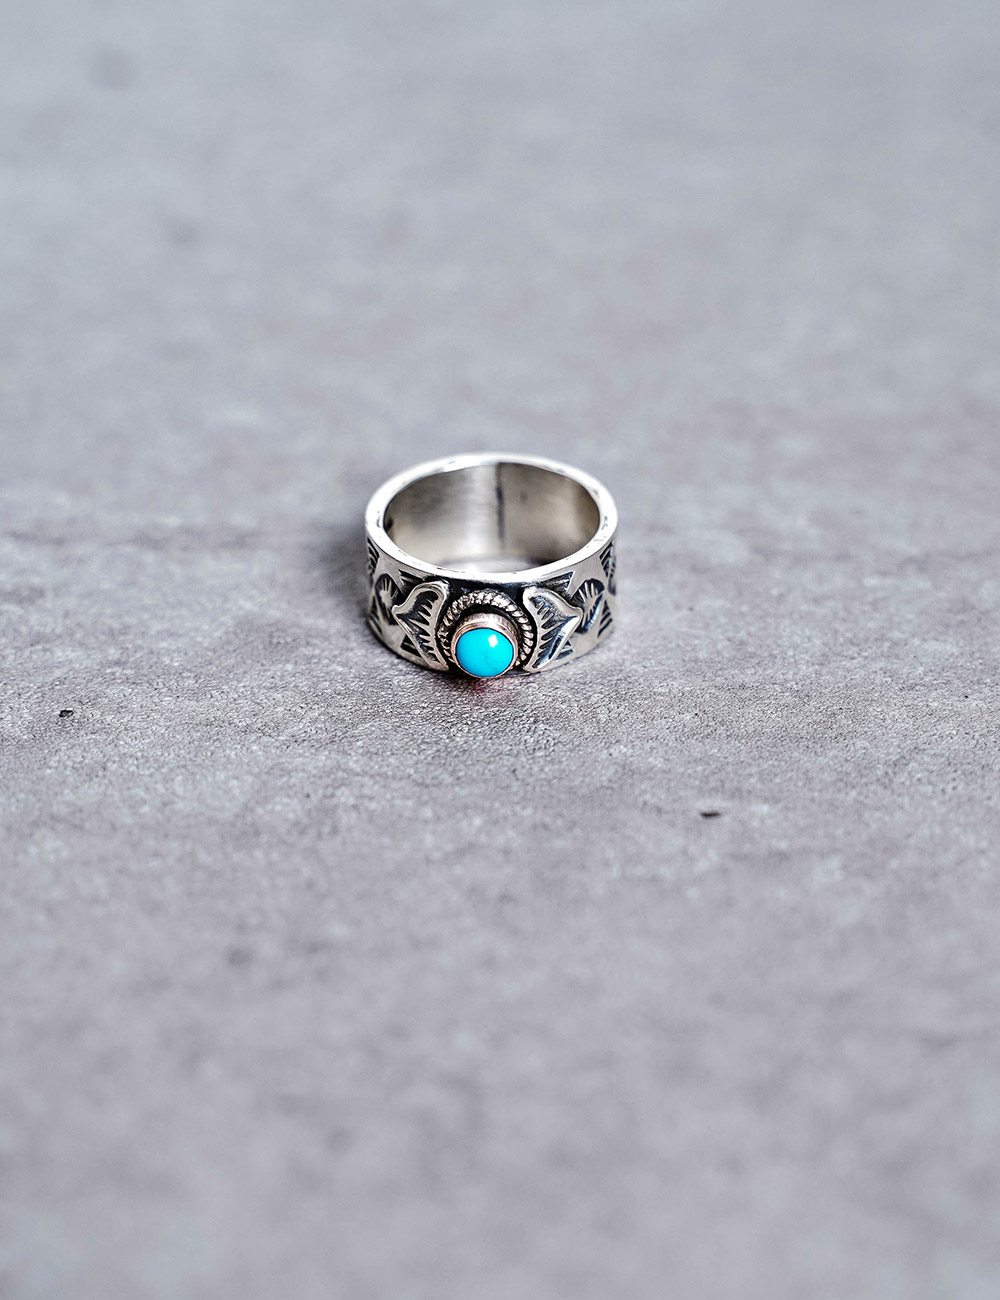 NATIVE AMERICAN JEWELRY : BO REEVES - STAMPED STERLING SILVER w/TURQUOISE RING